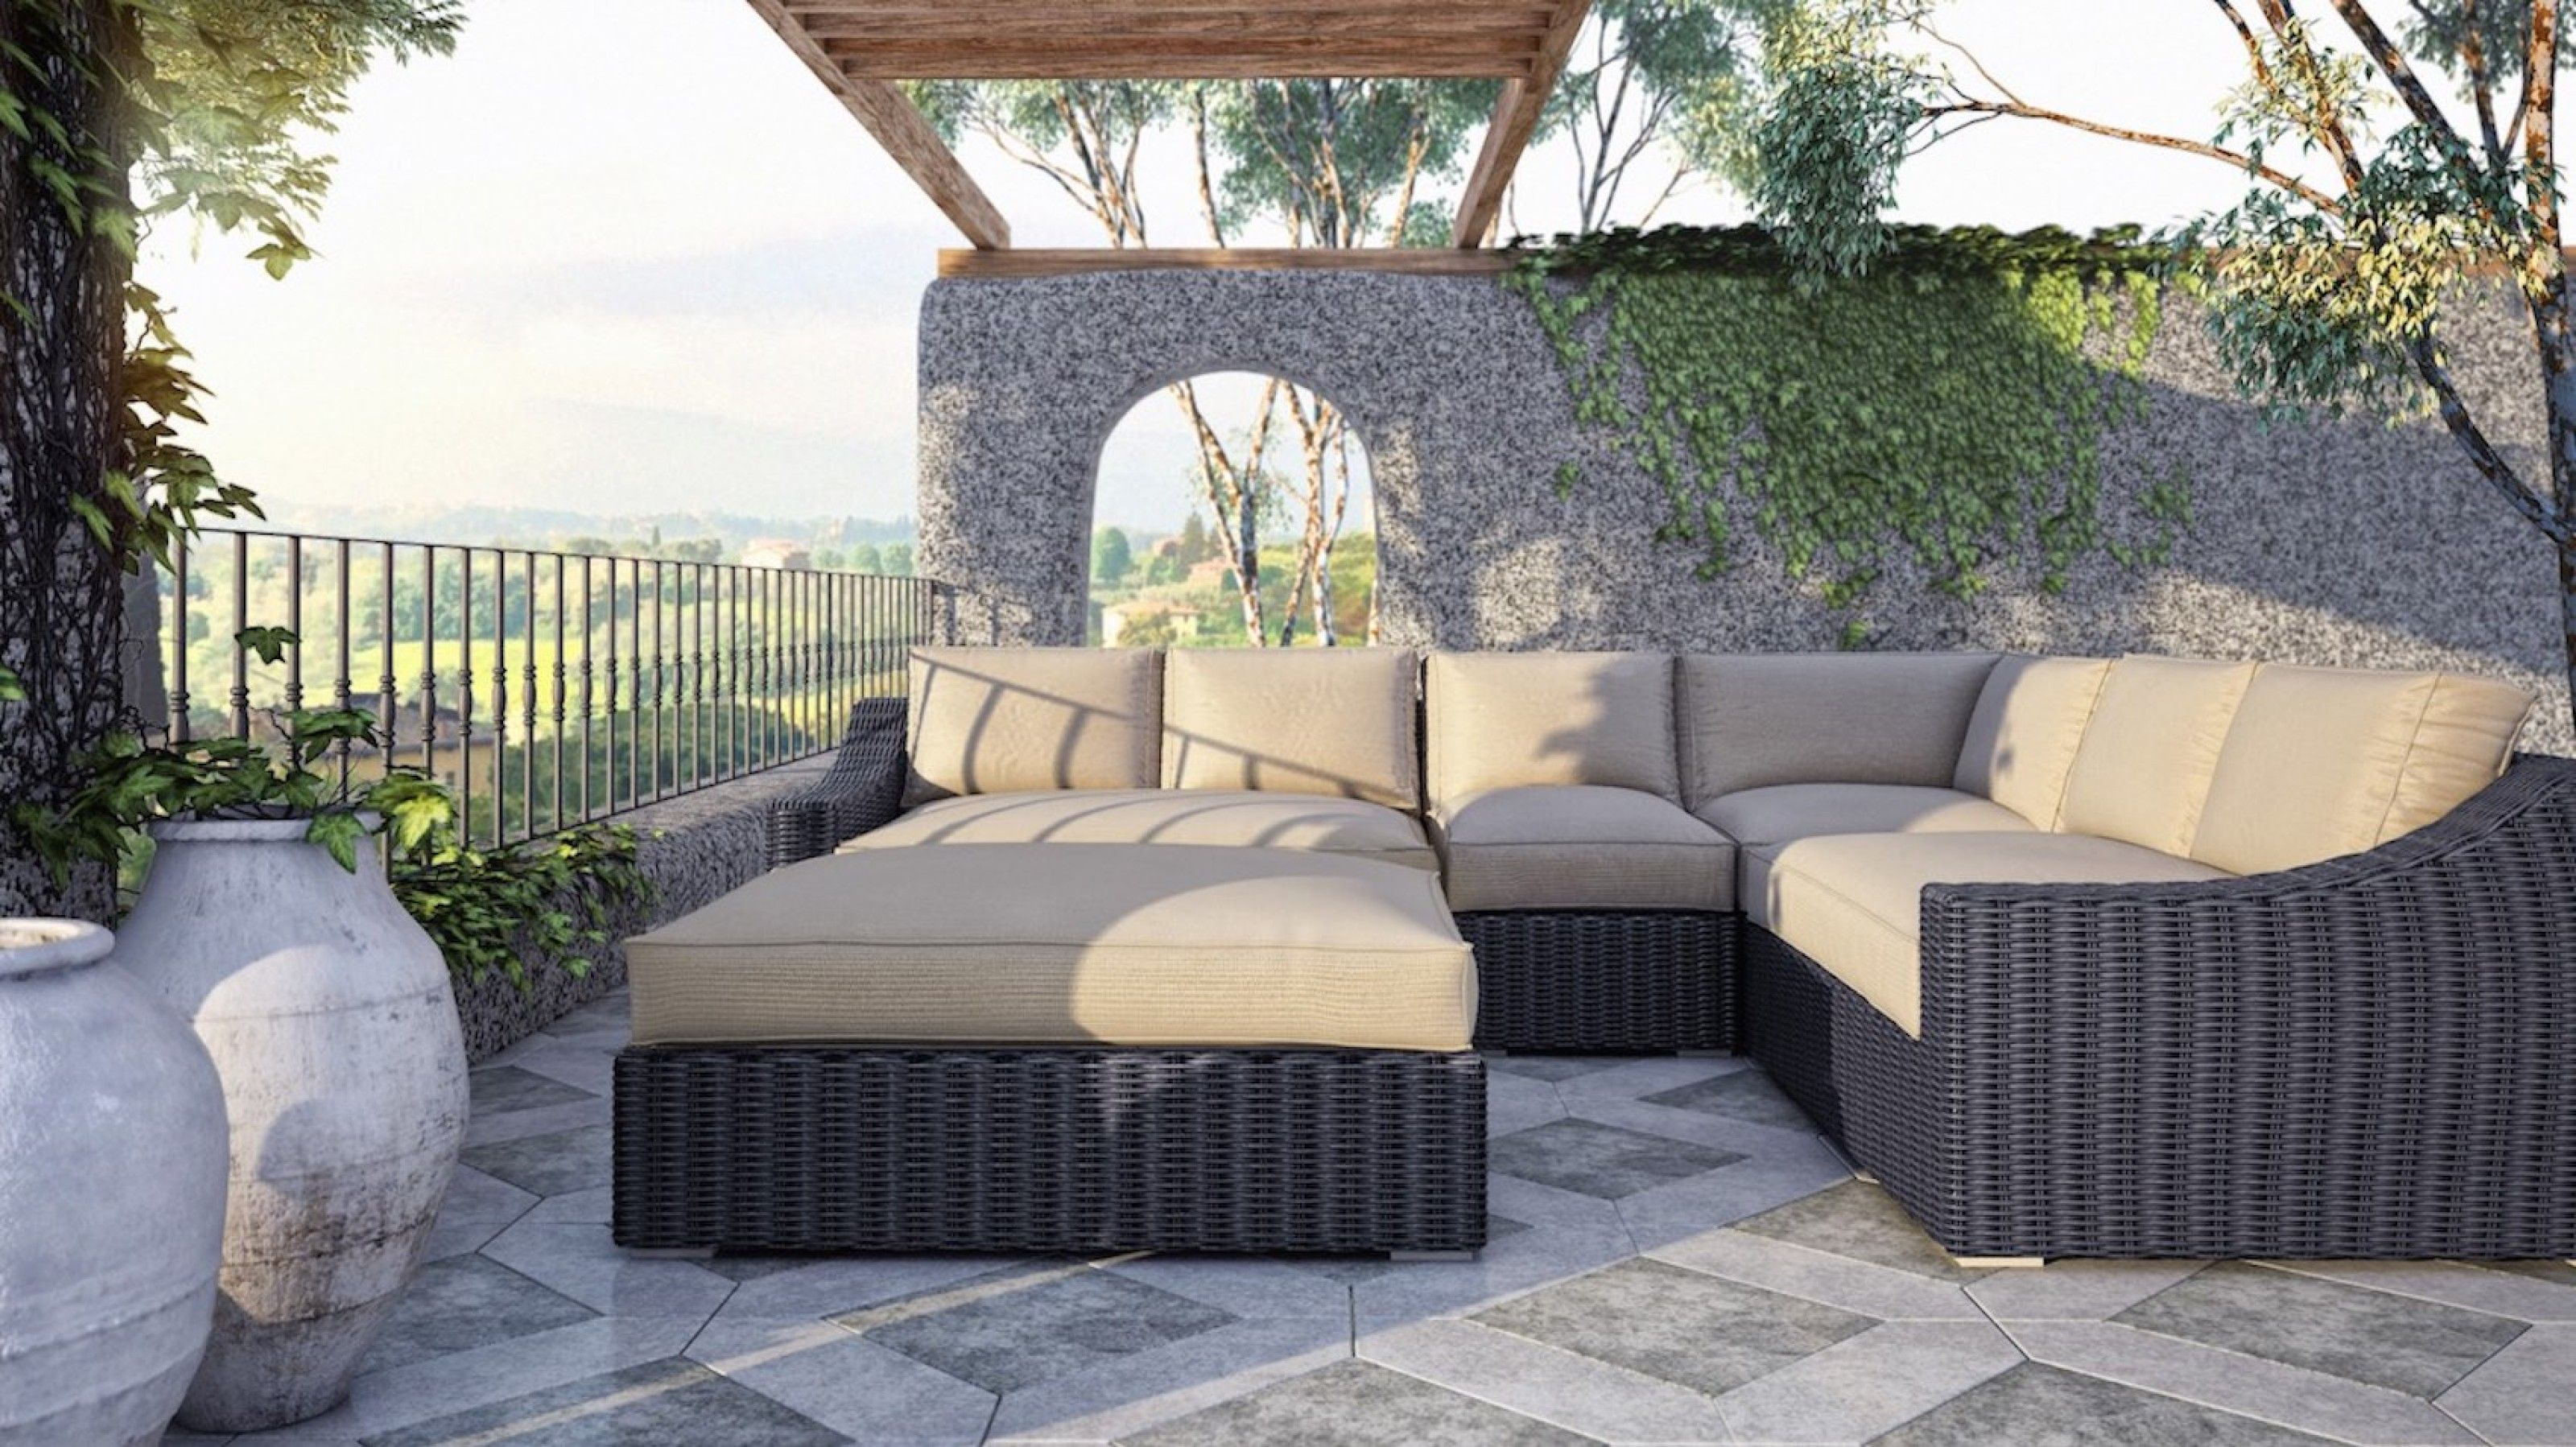 Tuscan Sectional Set 3 200 Includes Left Arm Middle Corner Right Arm And Ottoman All Cushions Made With Sunbrella Fabric Sectional Outdoor Deep Seating